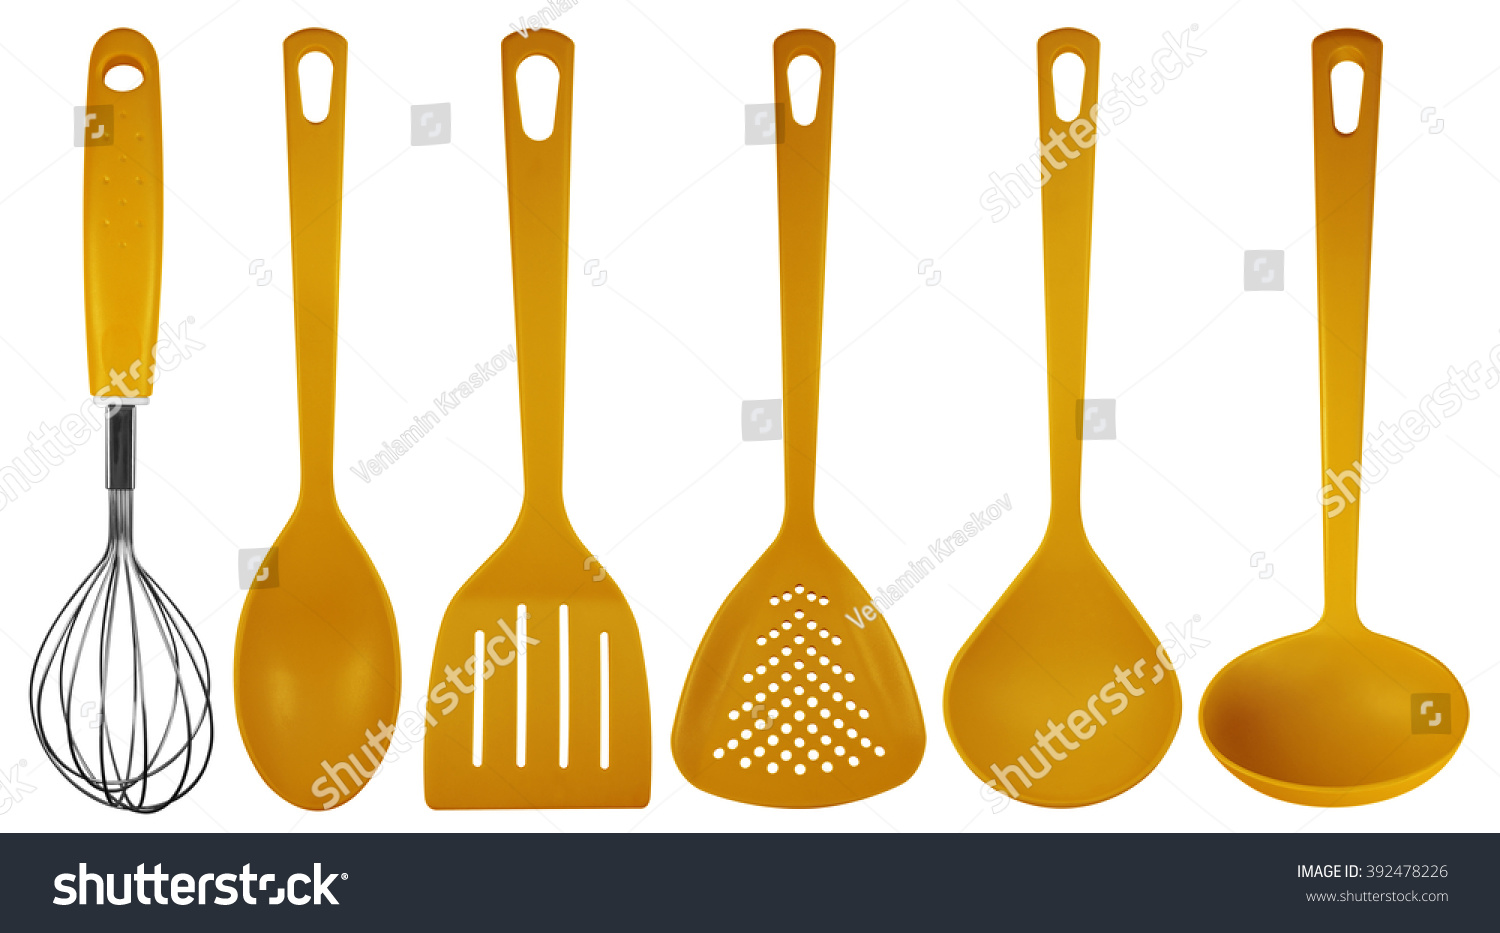 Orange Plastic Kitchen Utensils Isolated On Stock Photo (Royalty Free)  392478226   Shutterstock